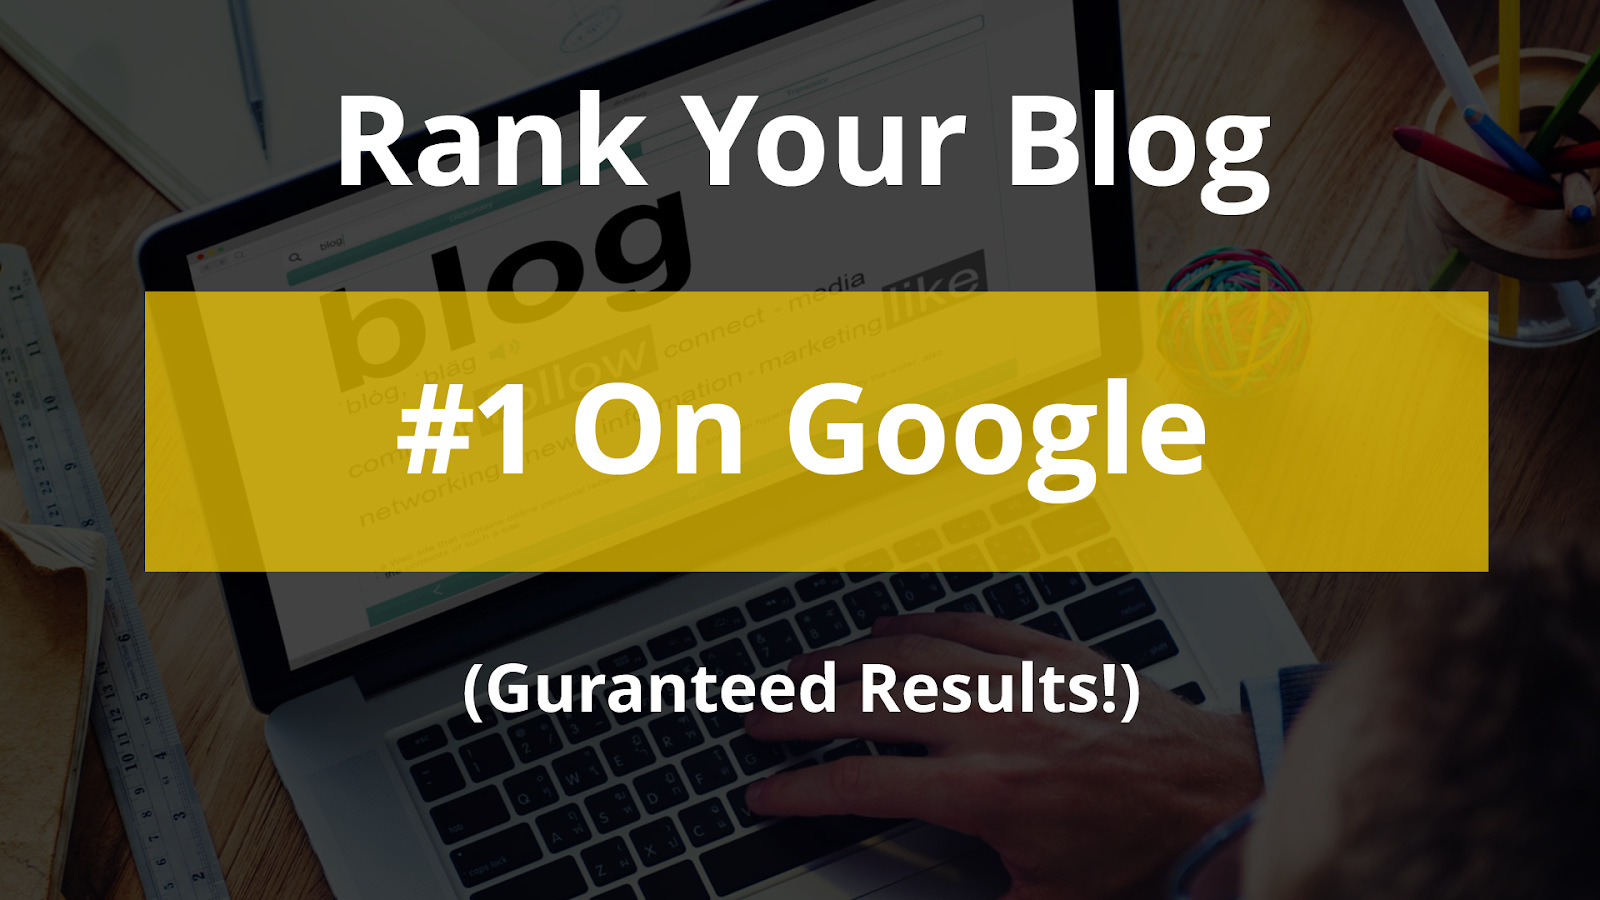 10 Tips to Get WordPress or Blog Site on Google First Page